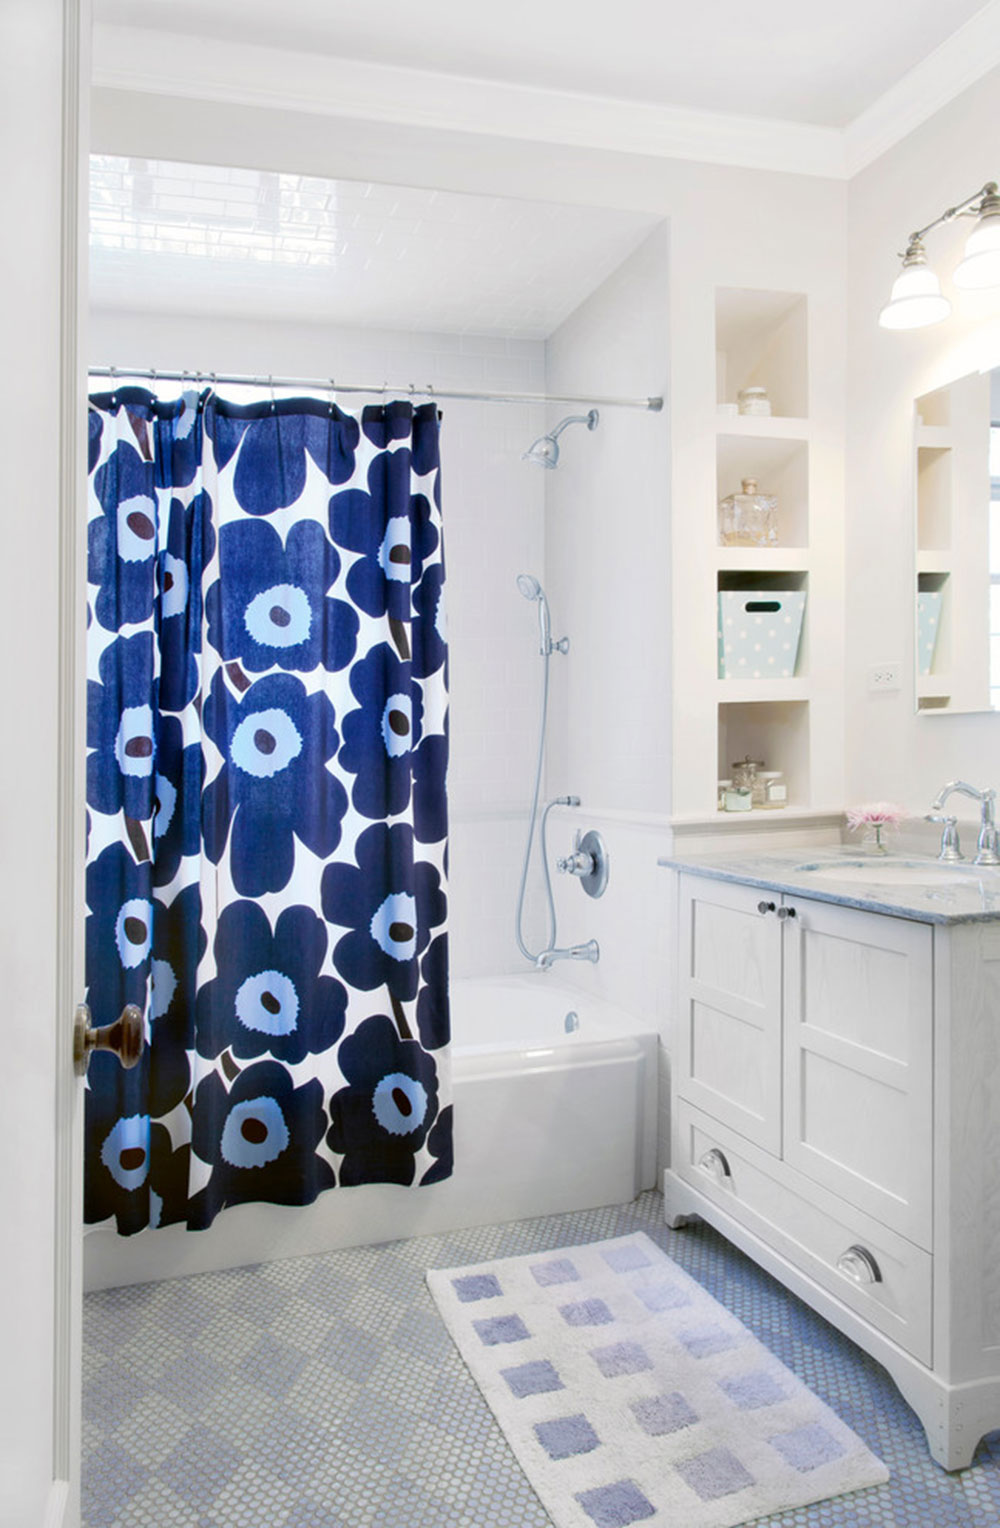 Improve Your Bath Appearance With Trendy Shower Curtain11